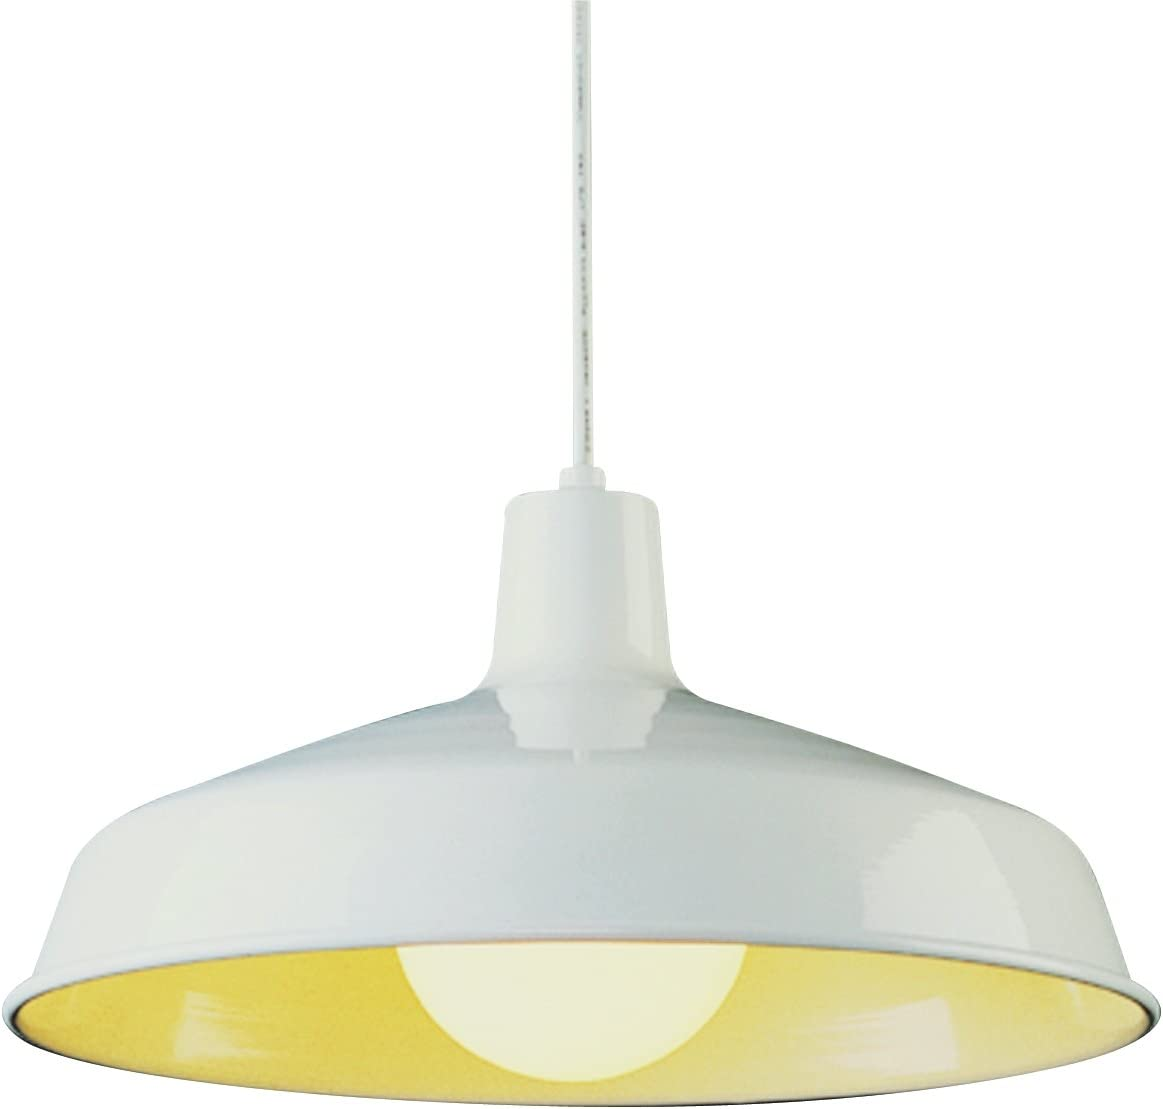 Bel Air Lighting Trans Globe Imports 1100 WH Traditional One Light Pendant from Sherman Collection in White Finish, 15.50 inches